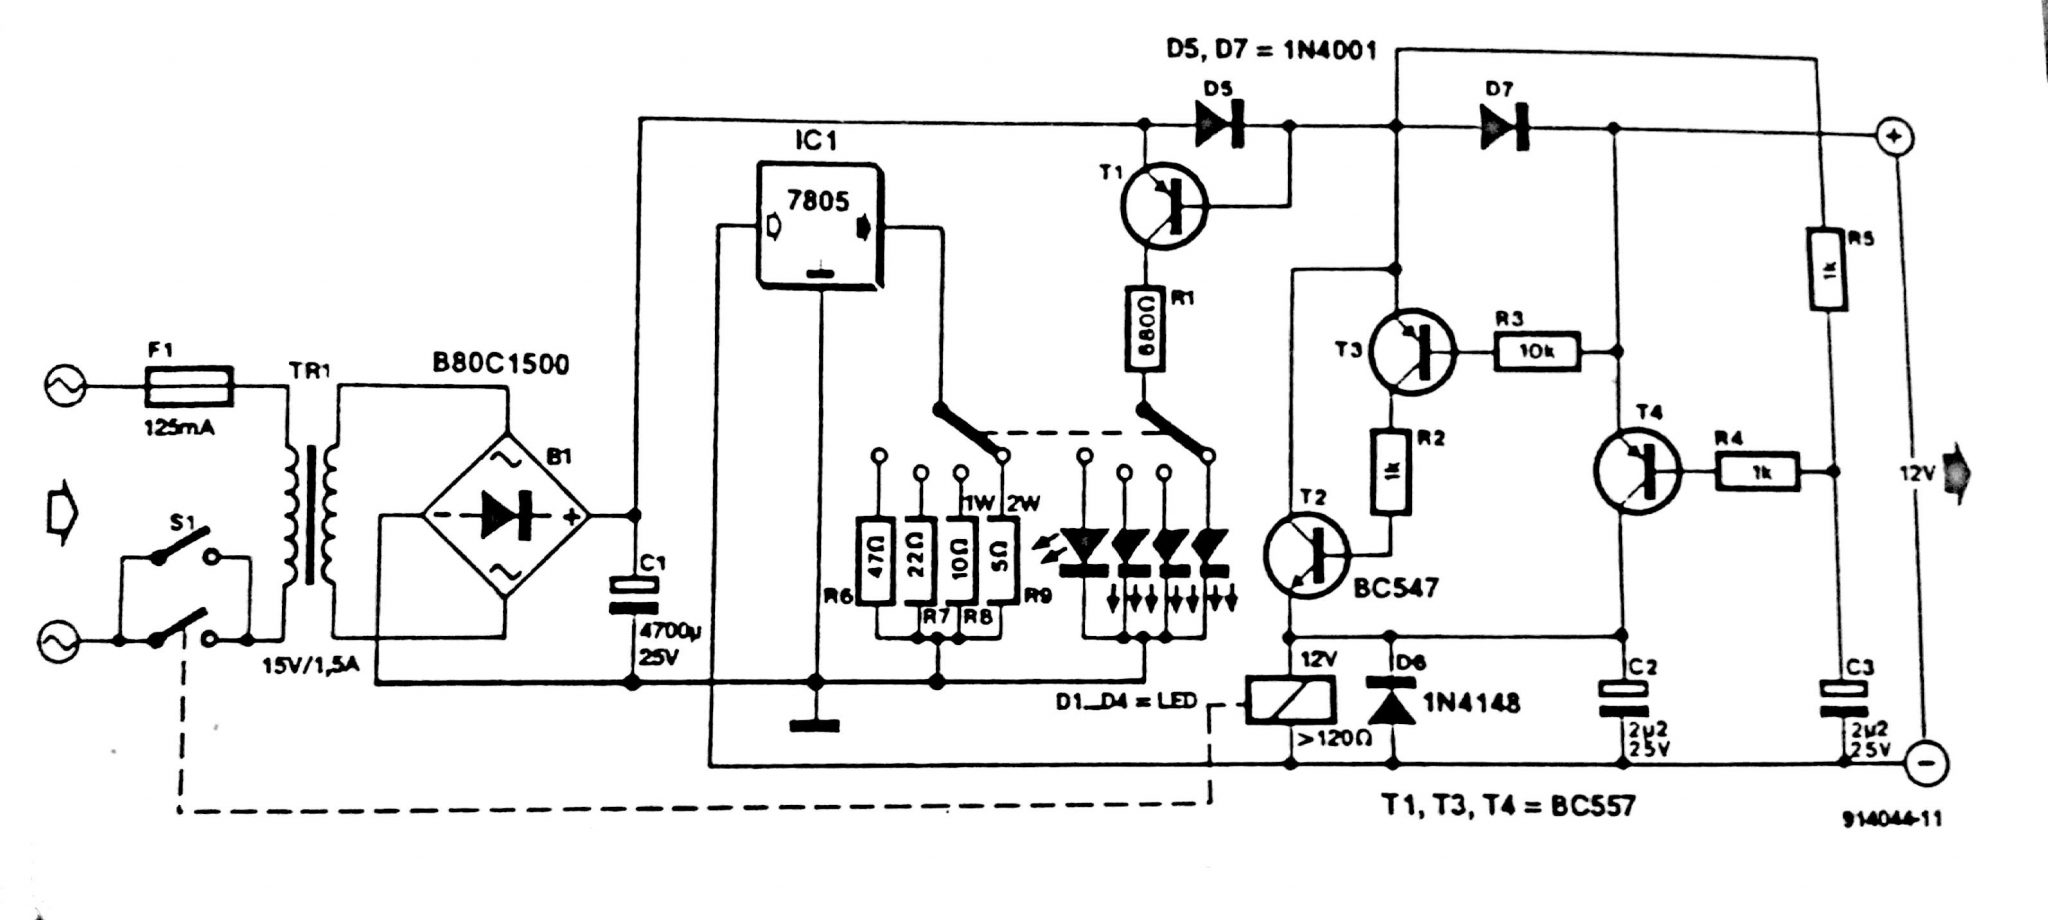 automatic 12v car battery charger circuit diagram doorbell wiring uk diagramz